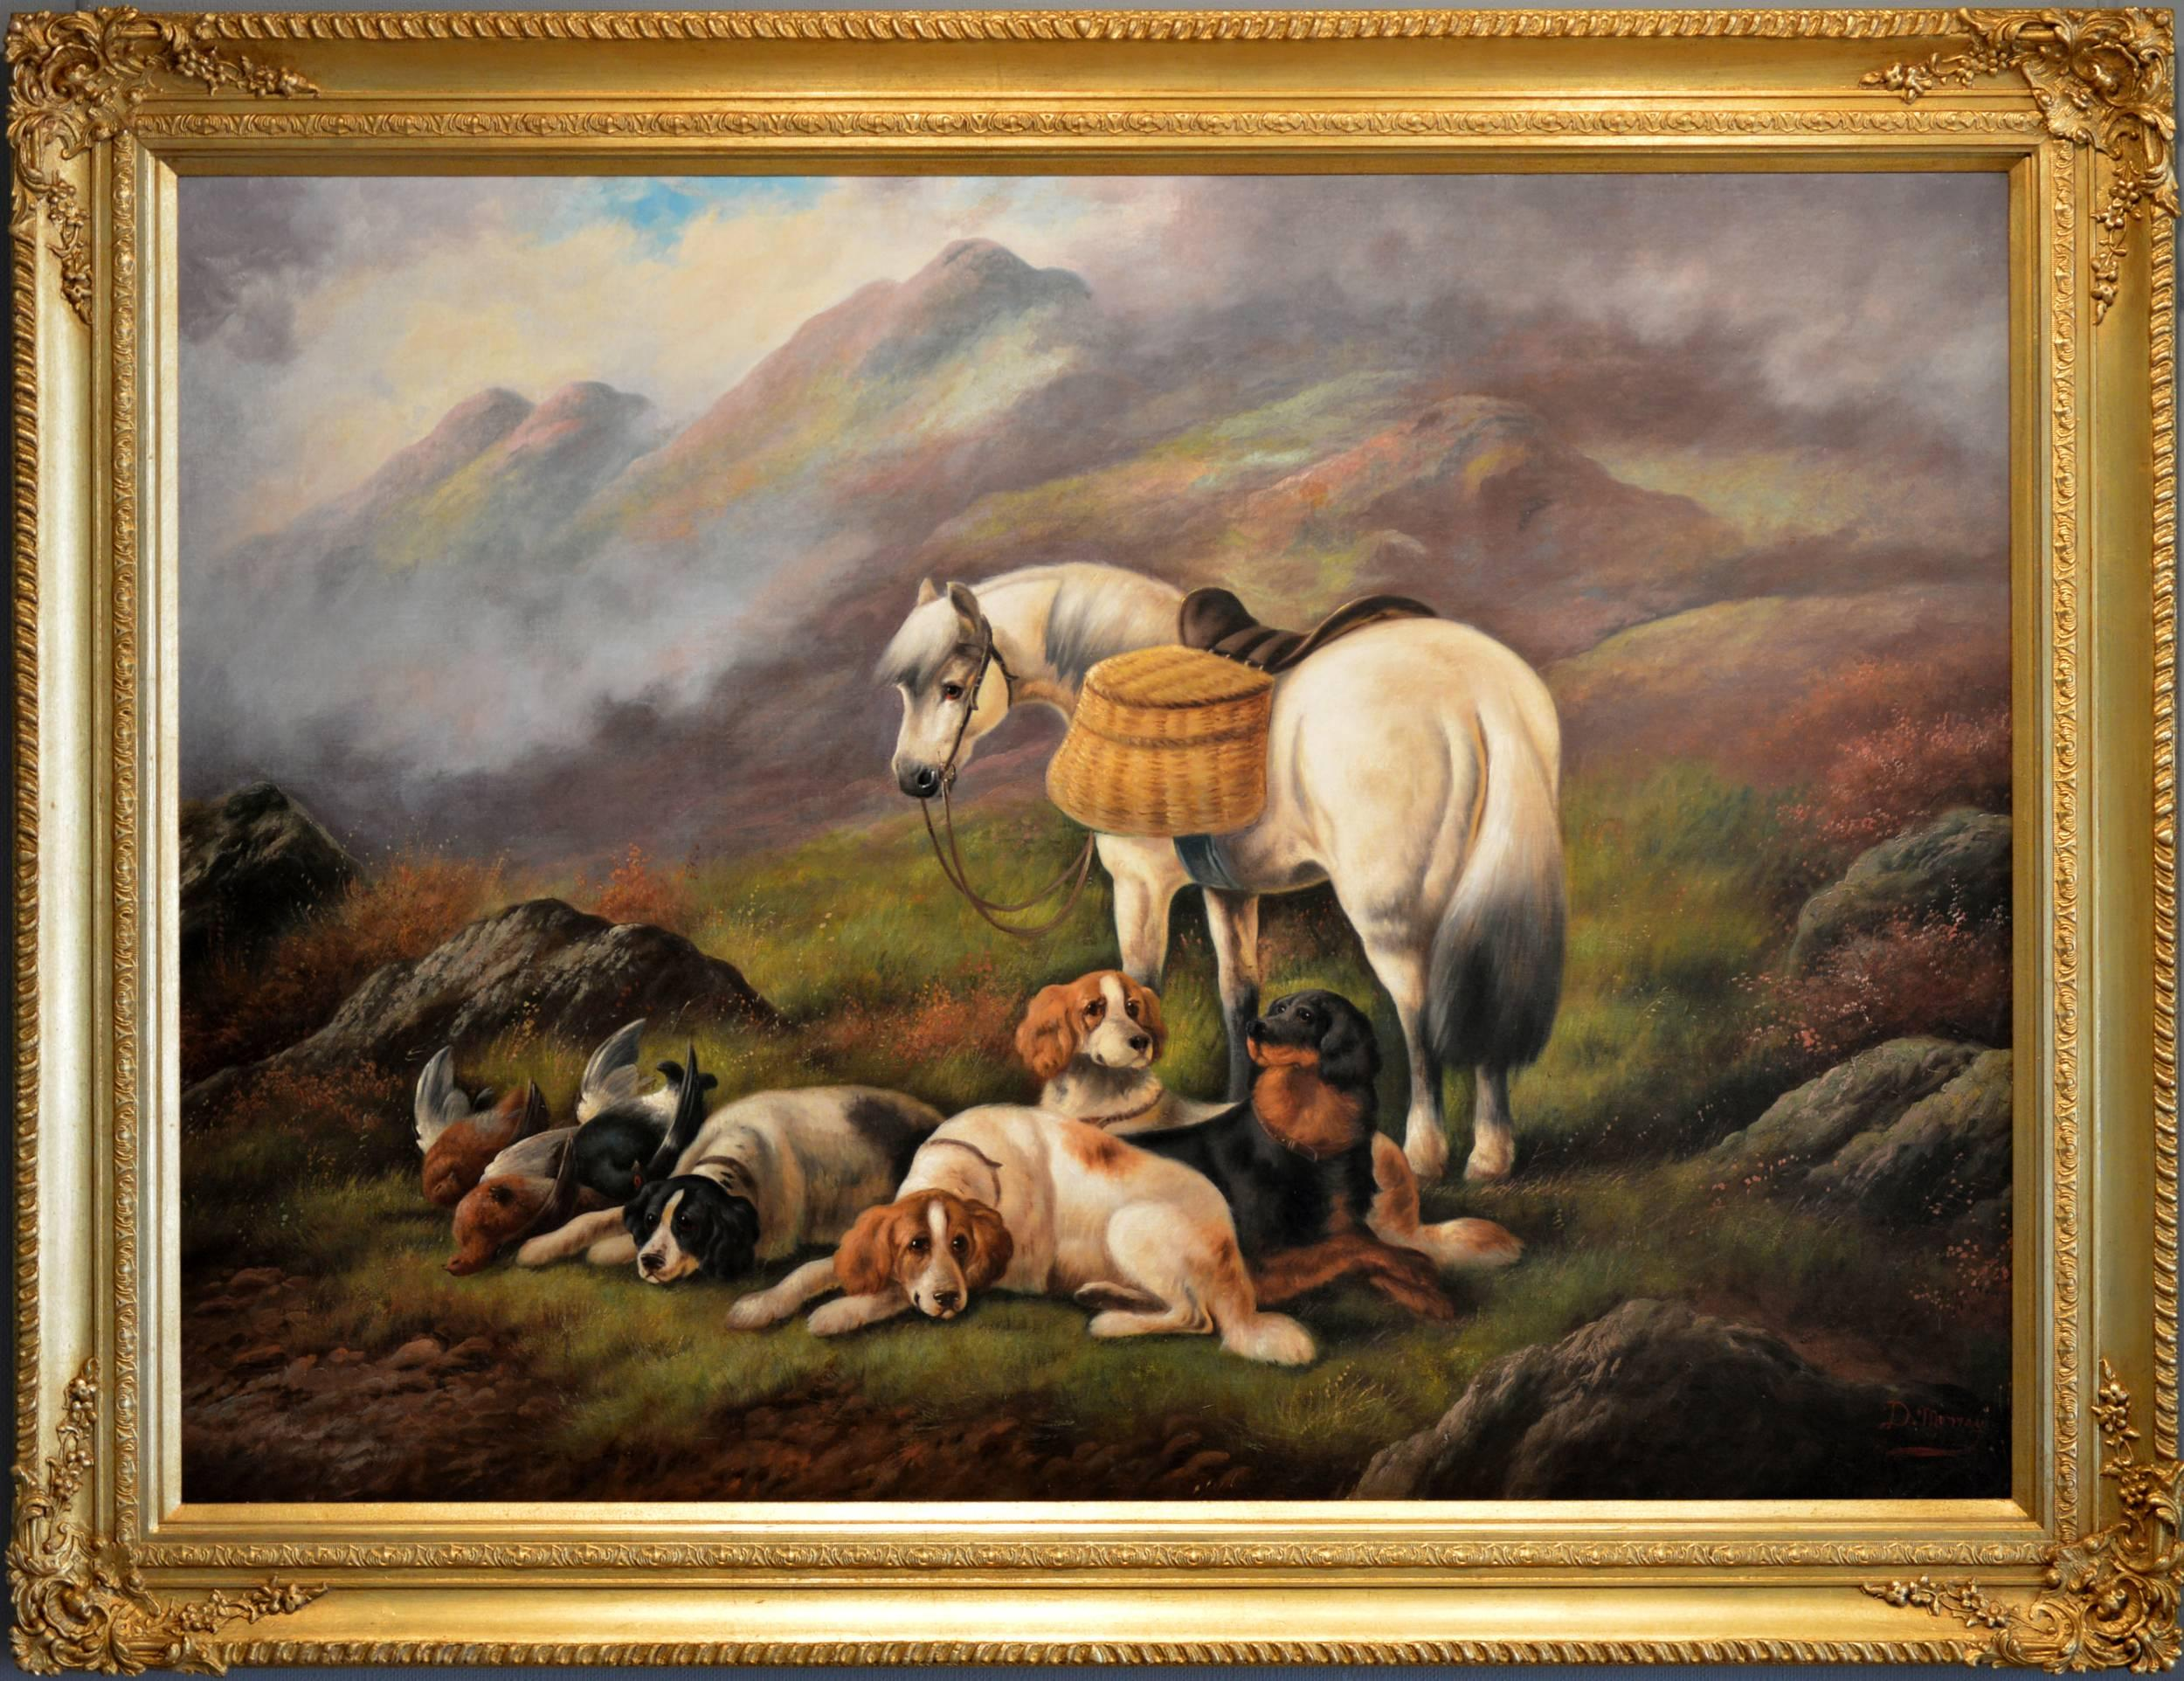 19th Century Highland sporting scene oil painting with dogs & a horse